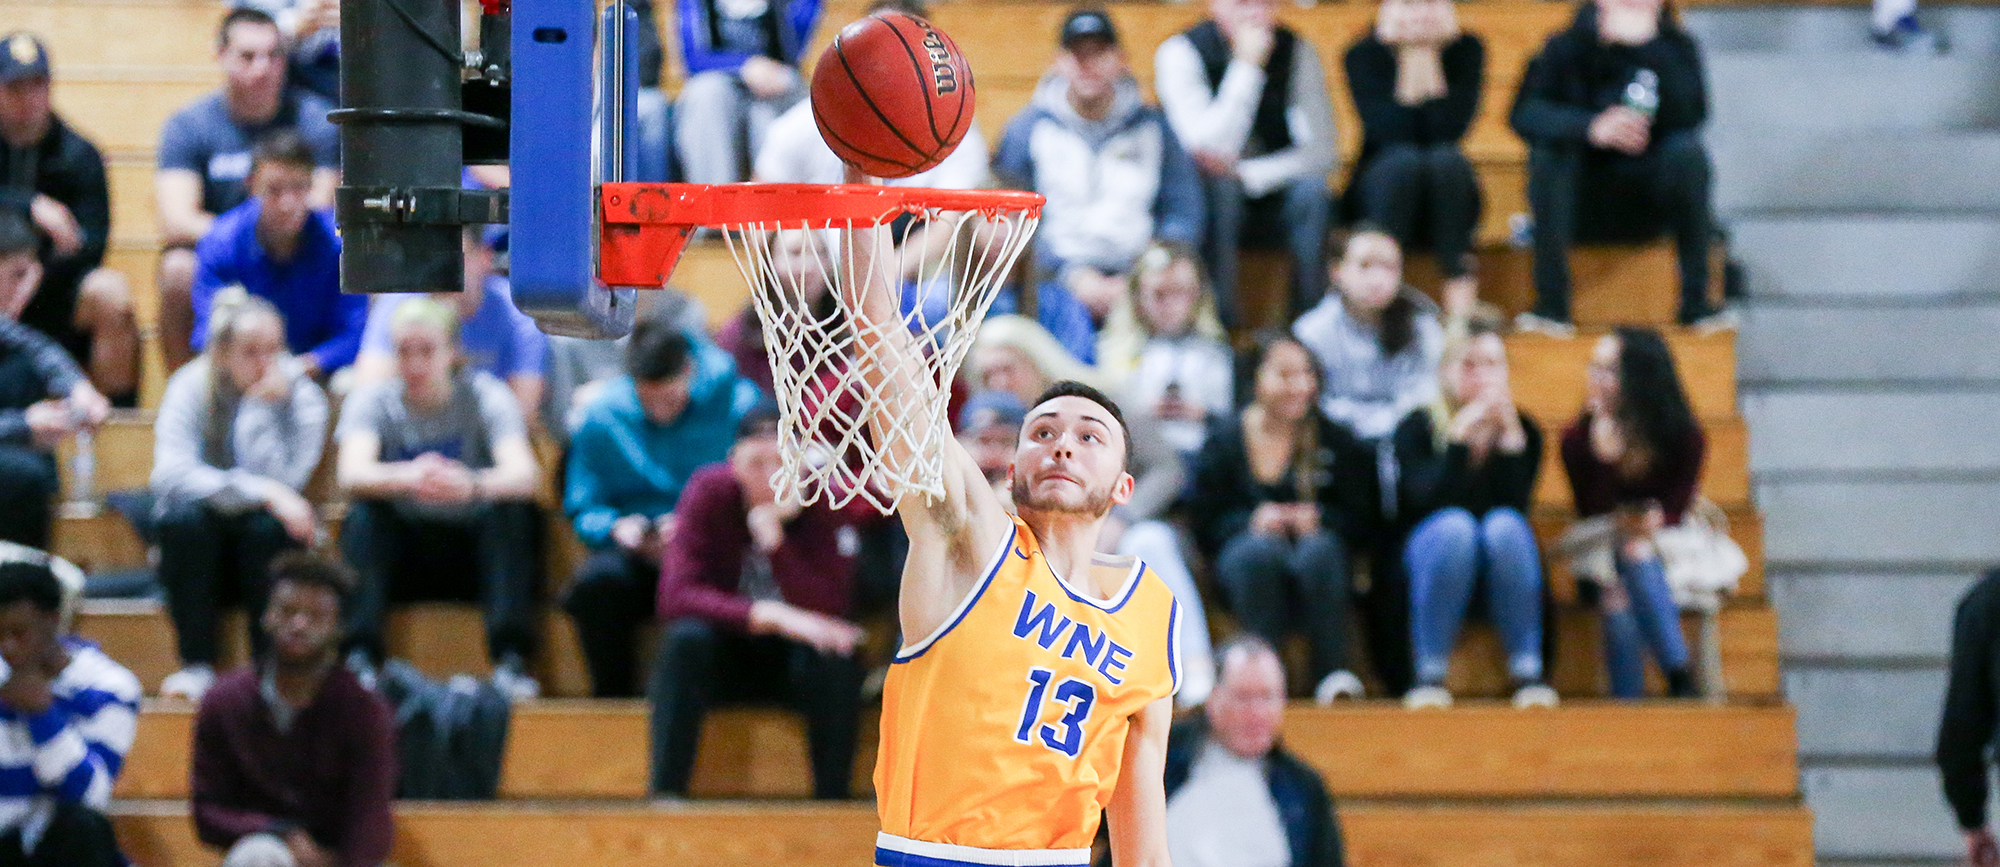 Freshman Alex Sikorski broke out for a season-high 24 points on 10-of-15 shooting in Western New England's wire-to-wire victory over Eastern Nazarene on Saturday. (Photo by Chris Marion)